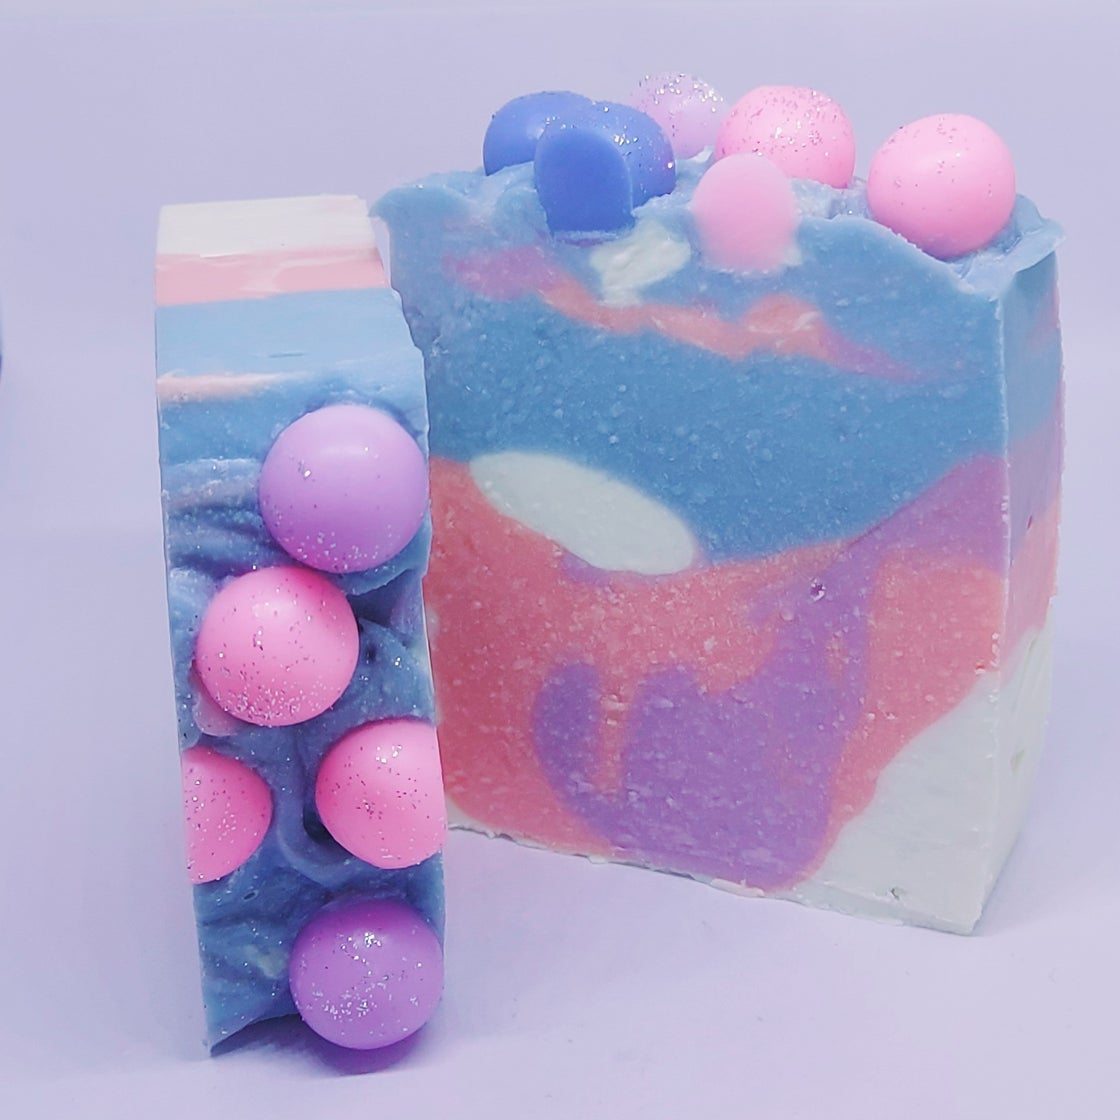 Image of The Screwball soap